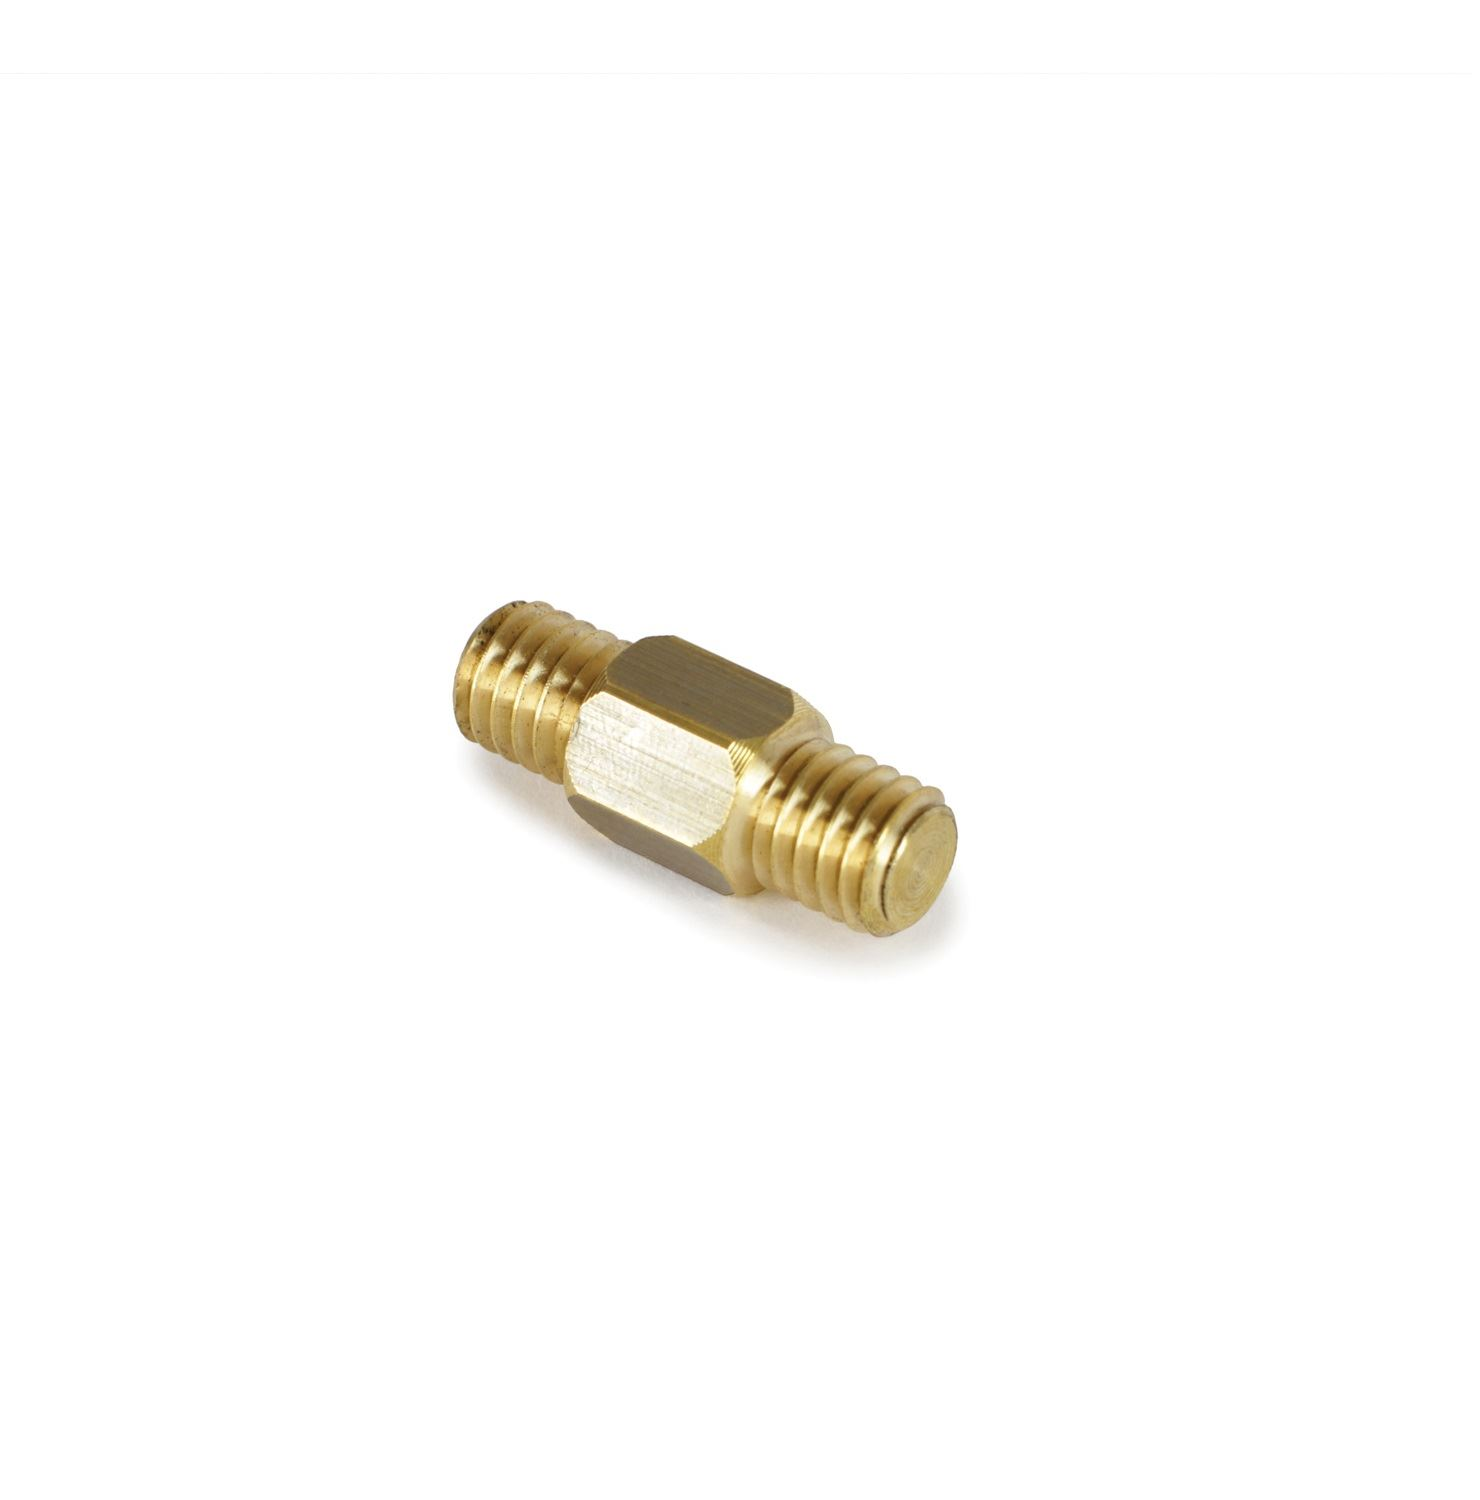 """Chimney rod adaptor from 1/2"""" Whitworth male to 1/2"""" Whitworth Adaptor male."""